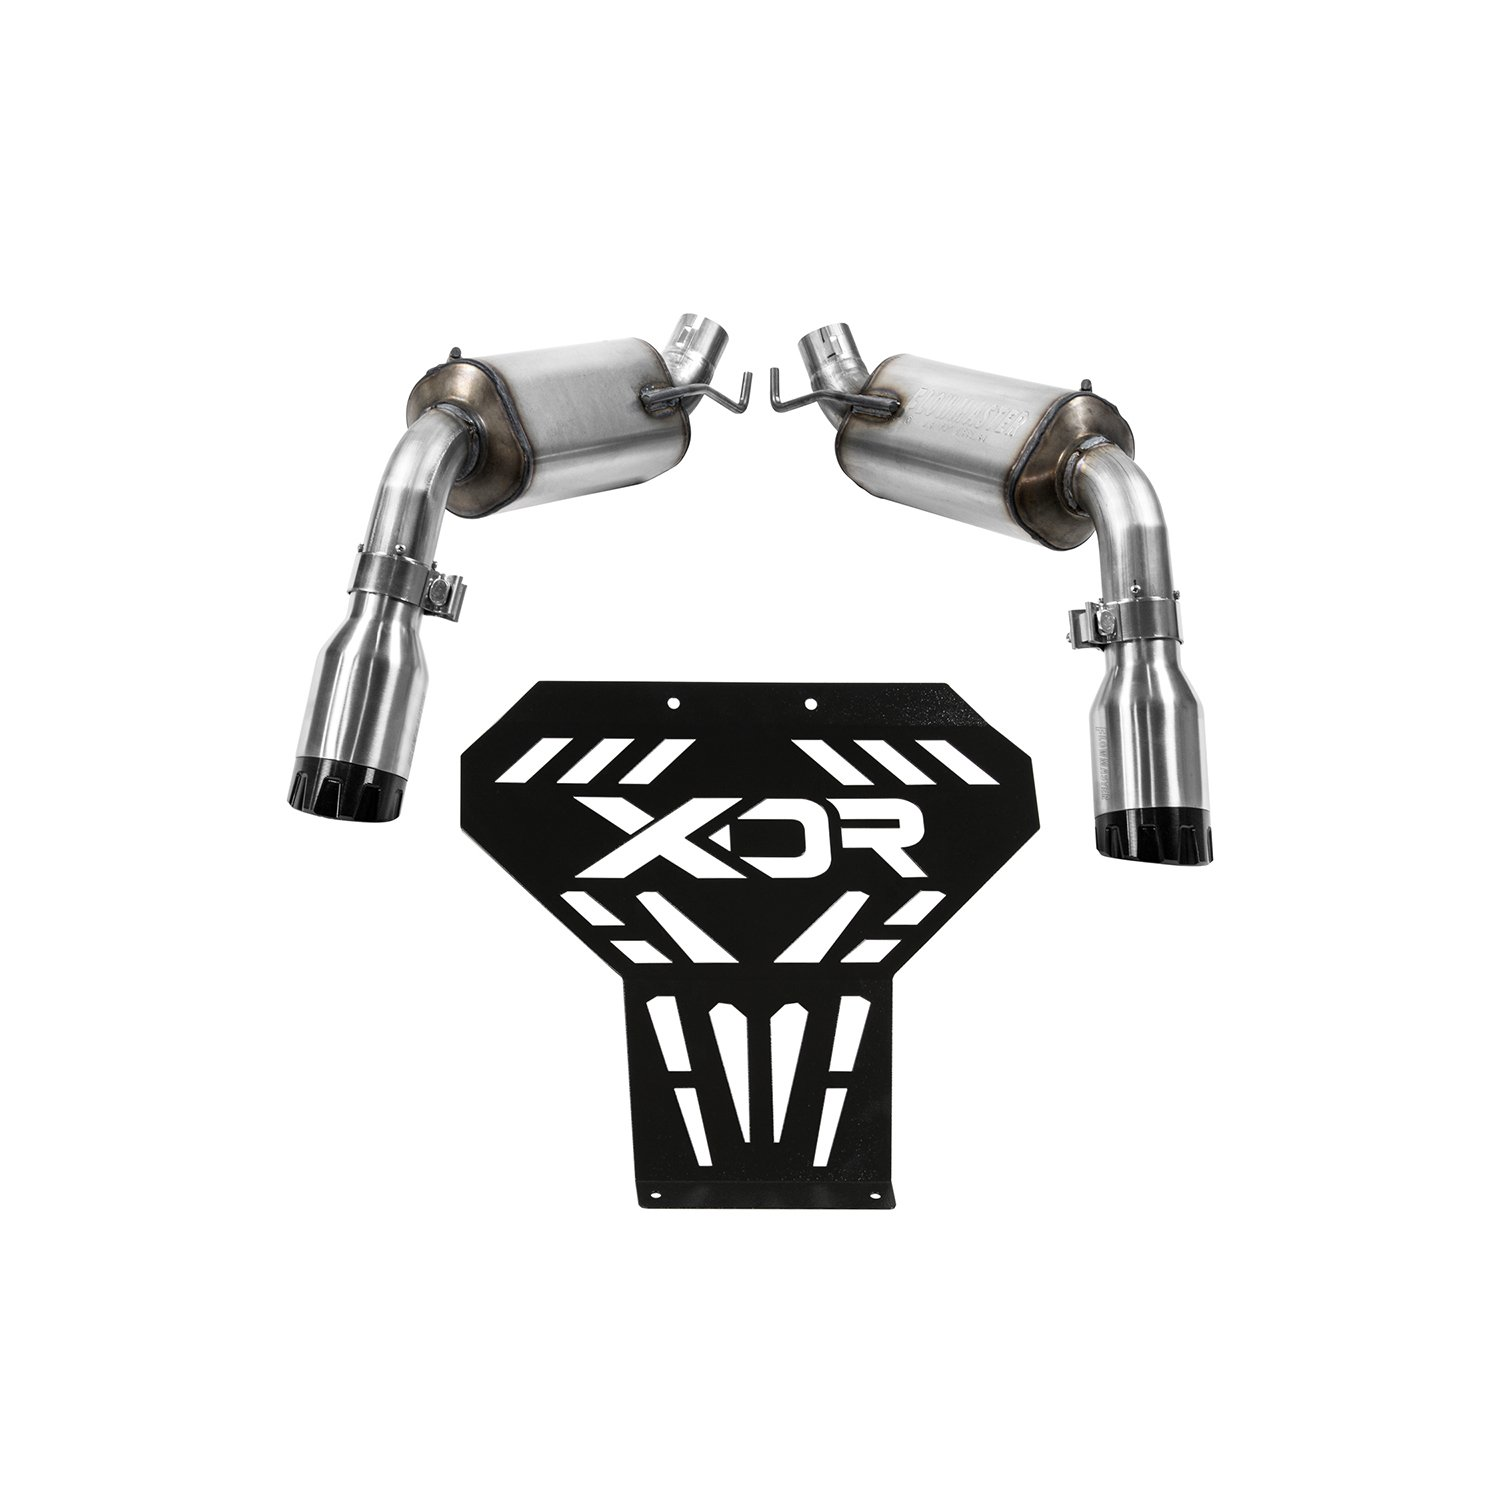 XDR 7202 XDR Competition Exhaust Kit - Maverick 1000R